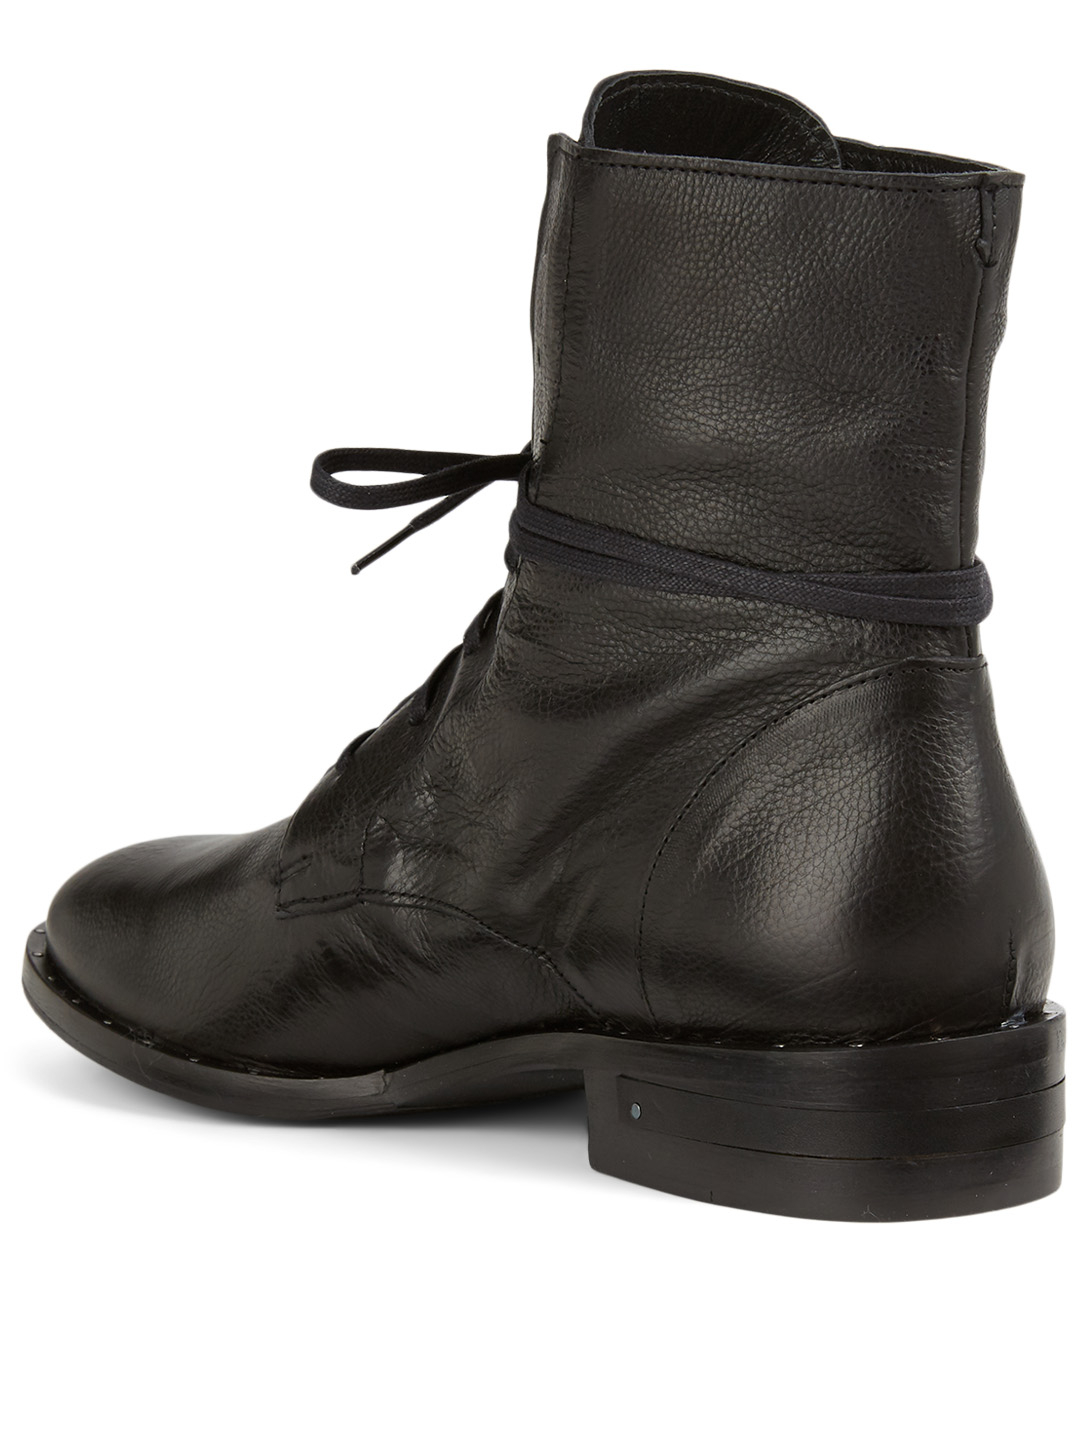 FREDA SALVADOR Alanis Leather Combat Boots Women's Black